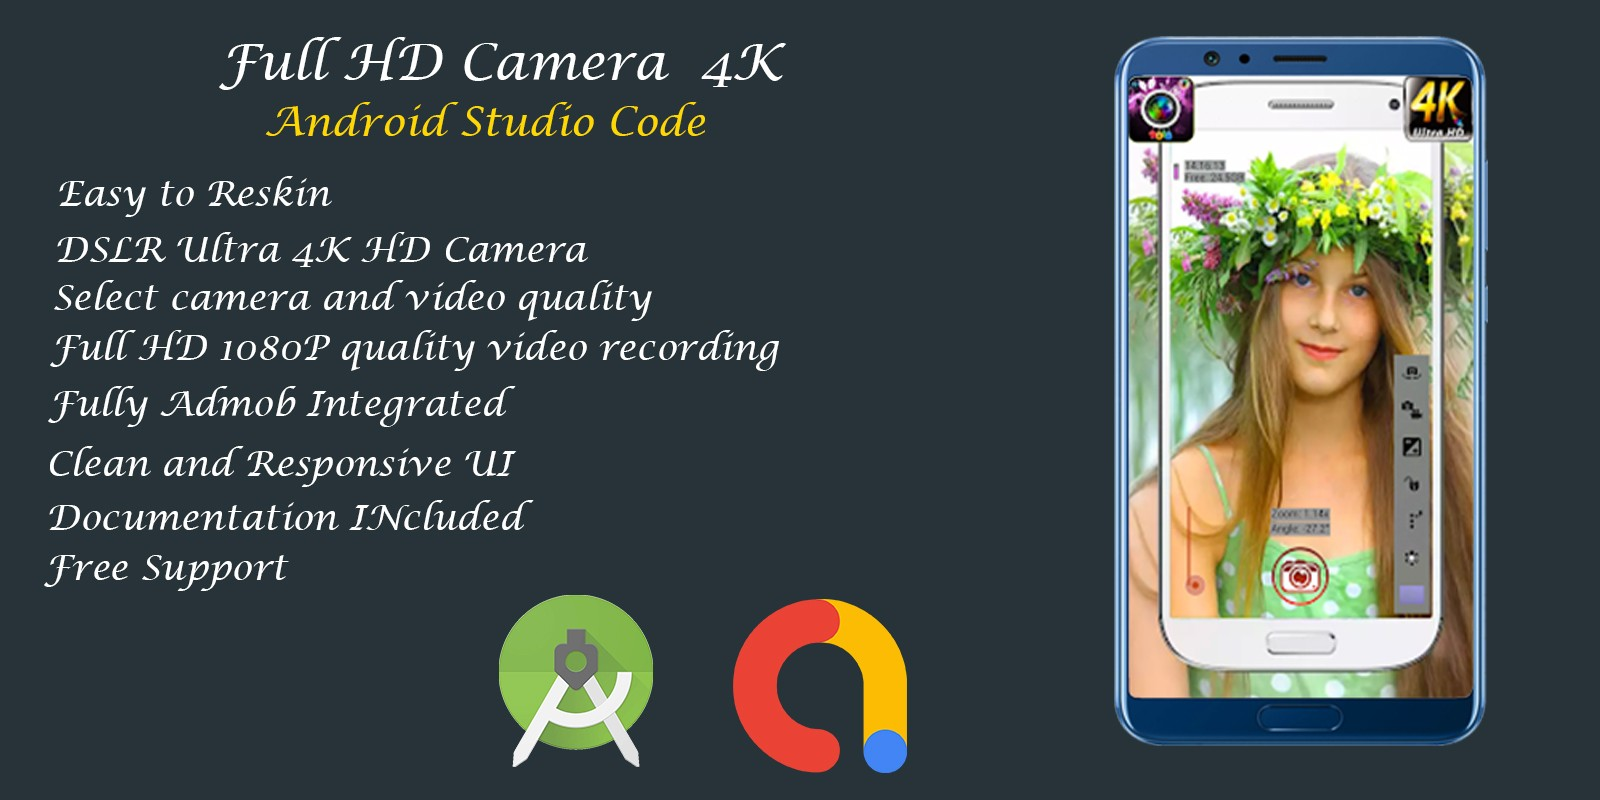 Full HD Camera - Android Source code